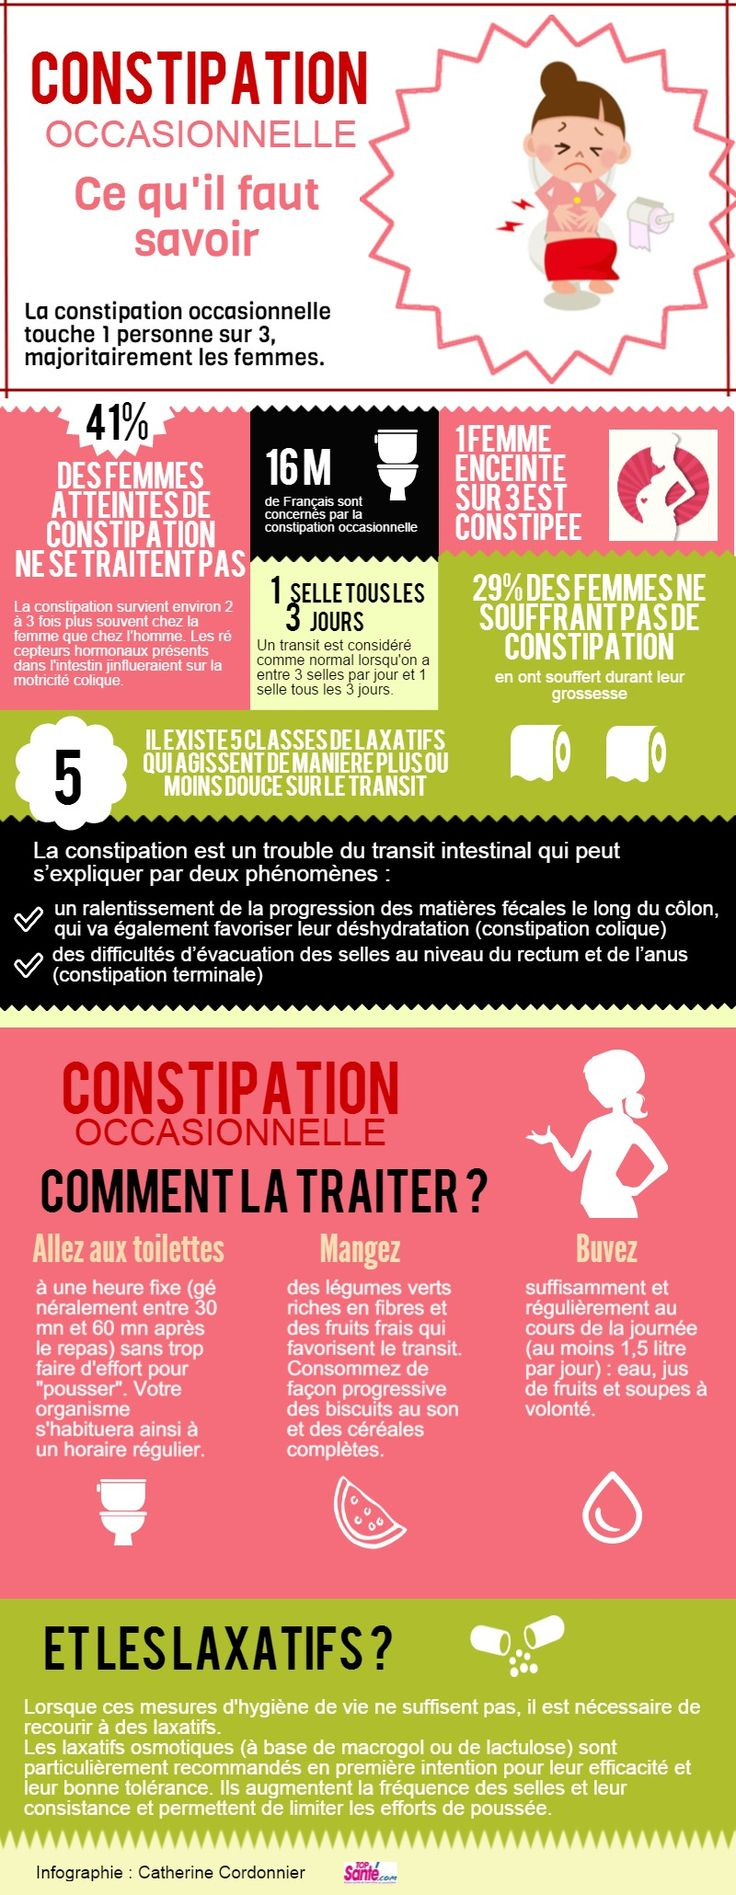 Constipation | Piktochart Infographic Editor